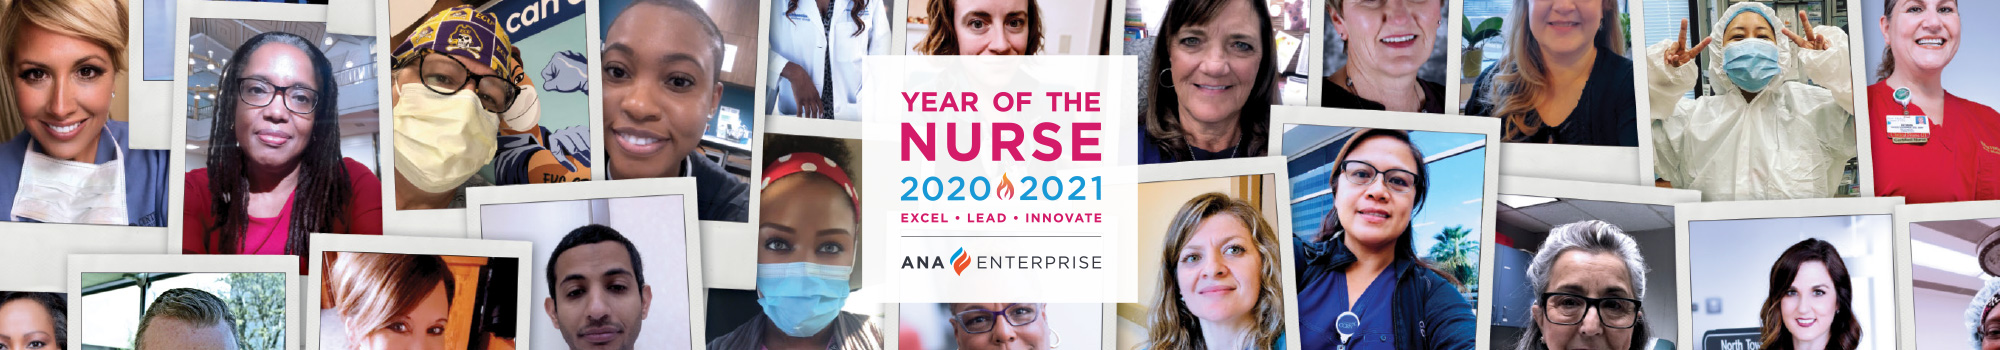 Virtual-Summit-Year-of-Nurse-2021-Band-Art